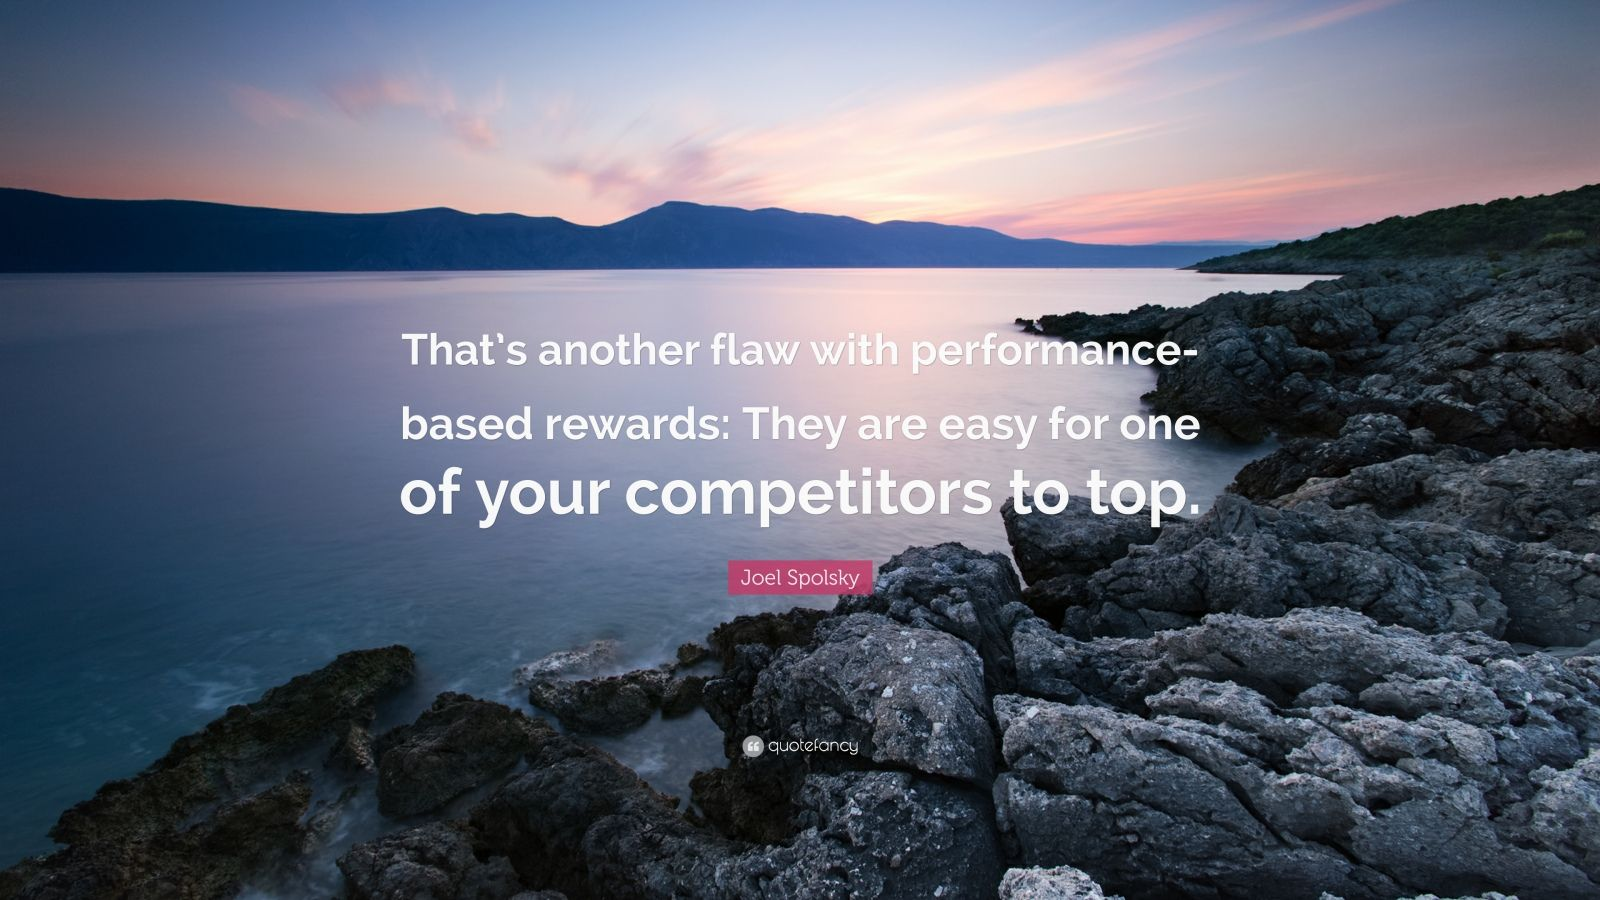 """Joel Spolsky Quote: """"That's another flaw with performance-based rewards: They are easy for one of your competitors to top."""""""